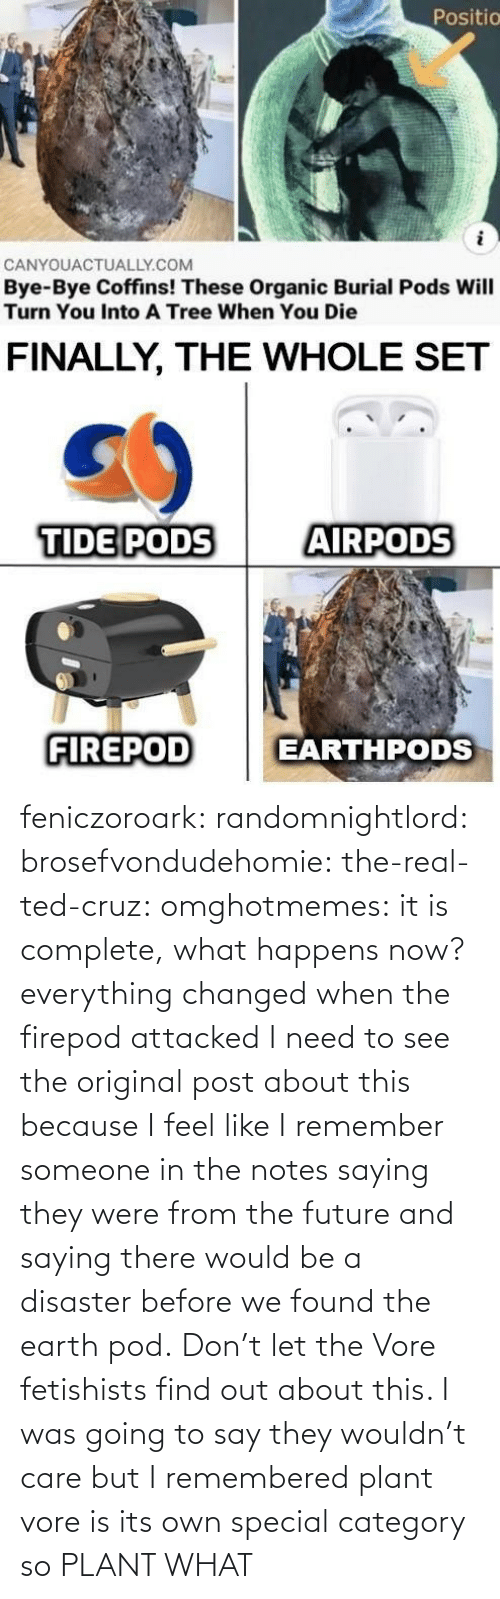 pod: feniczoroark:  randomnightlord:  brosefvondudehomie: the-real-ted-cruz:  omghotmemes: it is complete, what happens now? everything changed when the firepod attacked    I need to see the original post about this because I feel like I remember someone in the notes saying they were from the future and saying there would be a disaster before we found the earth pod.    Don't let the Vore fetishists find out about this.    I was going to say they wouldn't care but I remembered plant vore is its own special category so   PLANT WHAT